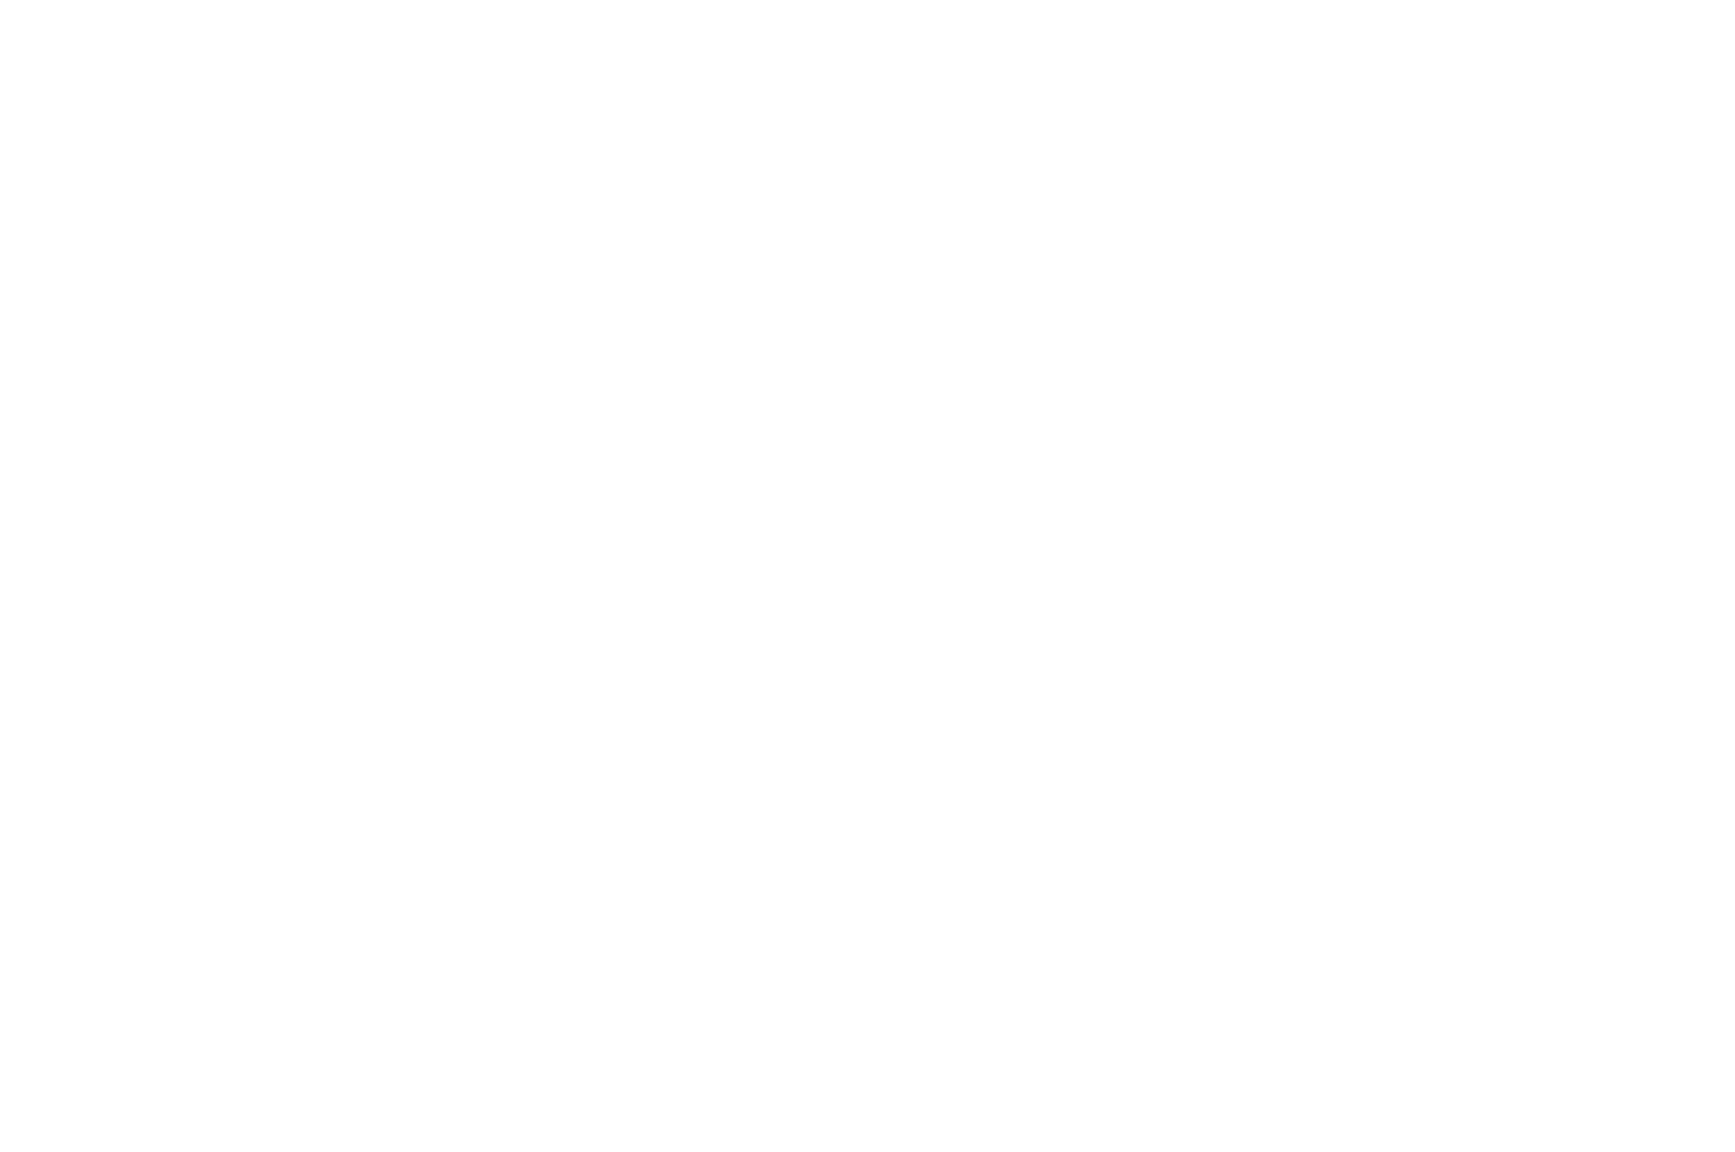 OFFICIAL SELECTION - Dominican Film Festival - 2018.png